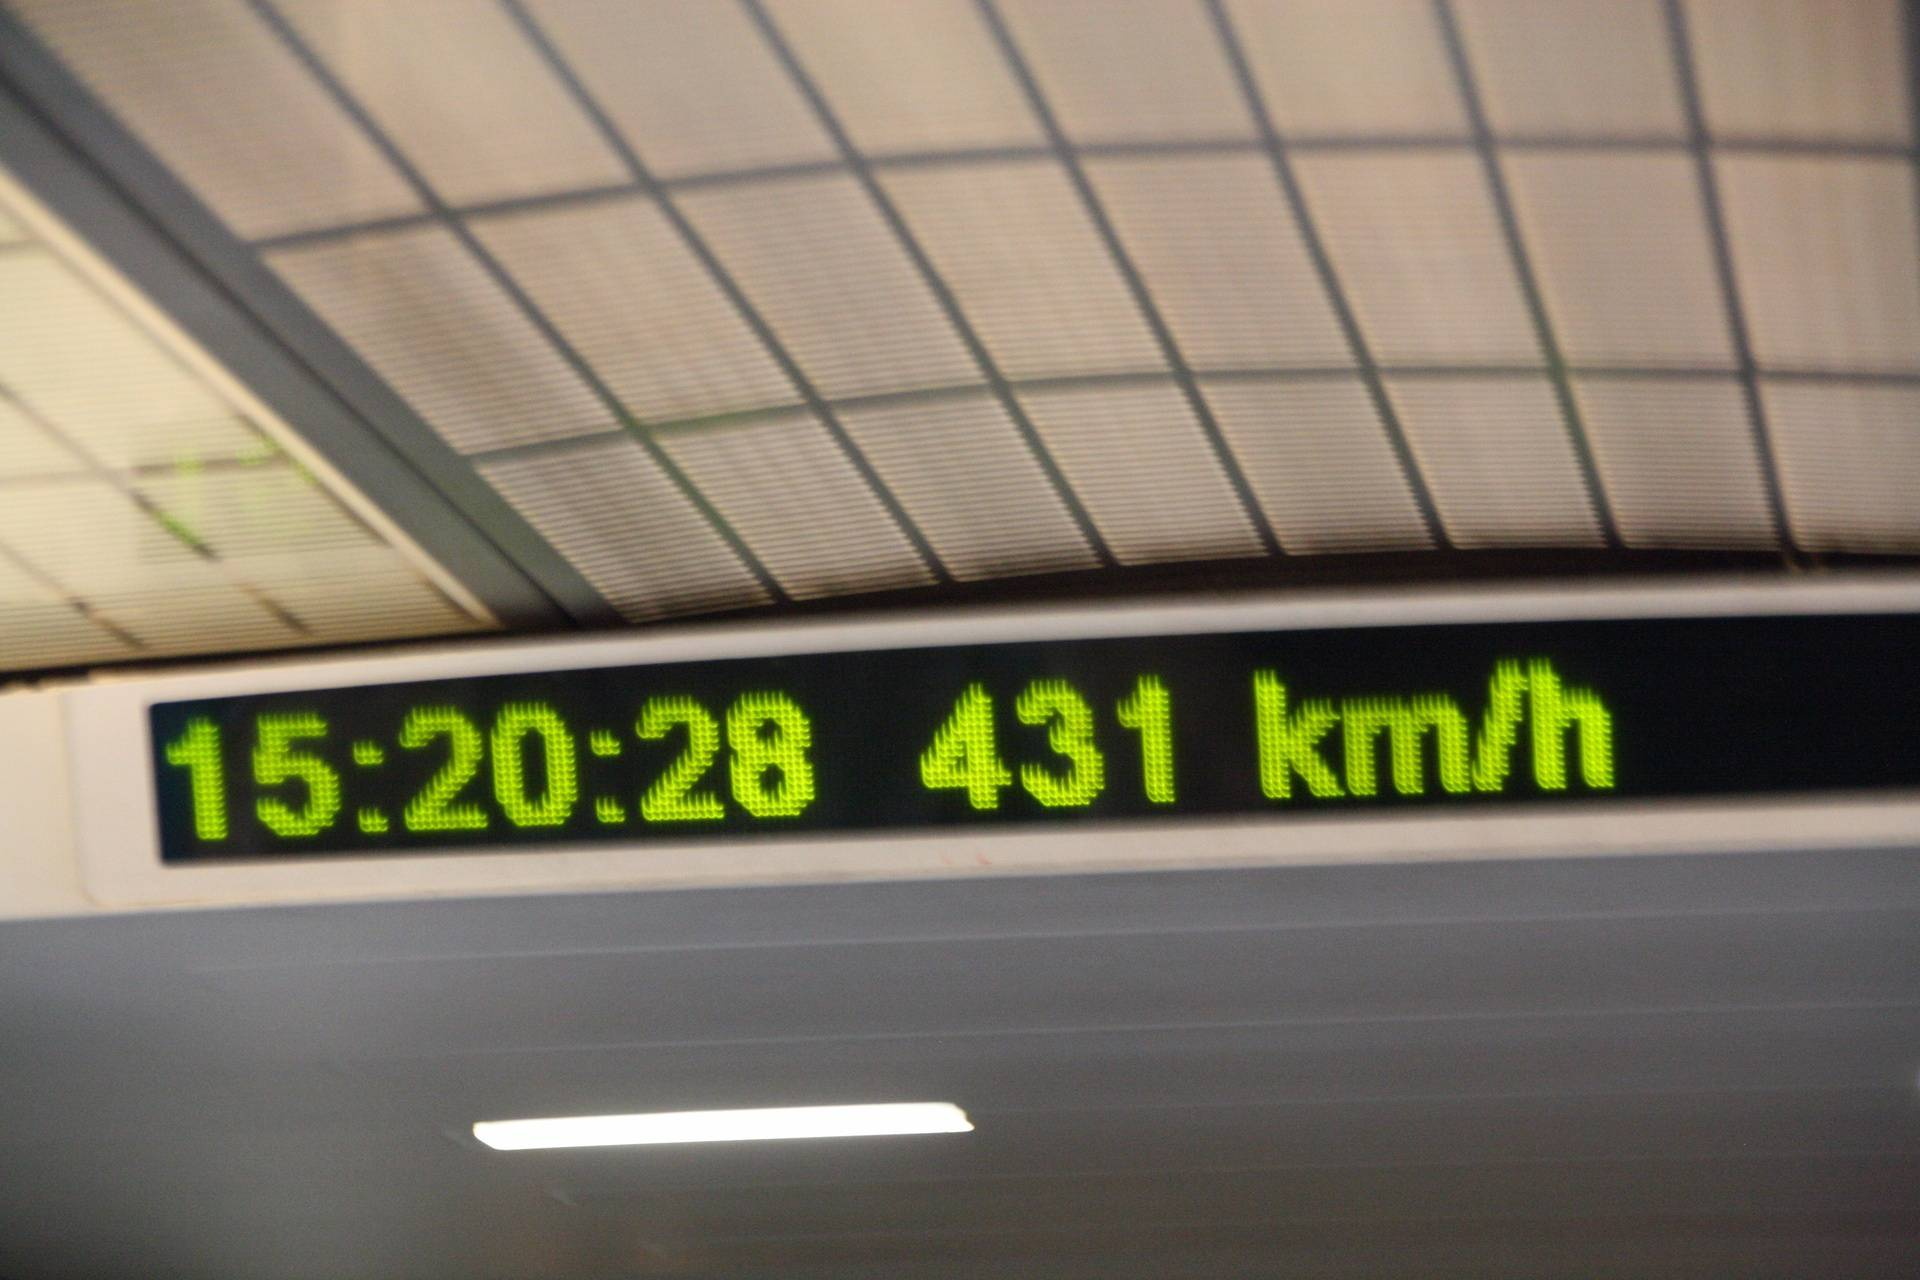 Speed on Maglev train in Shanghai